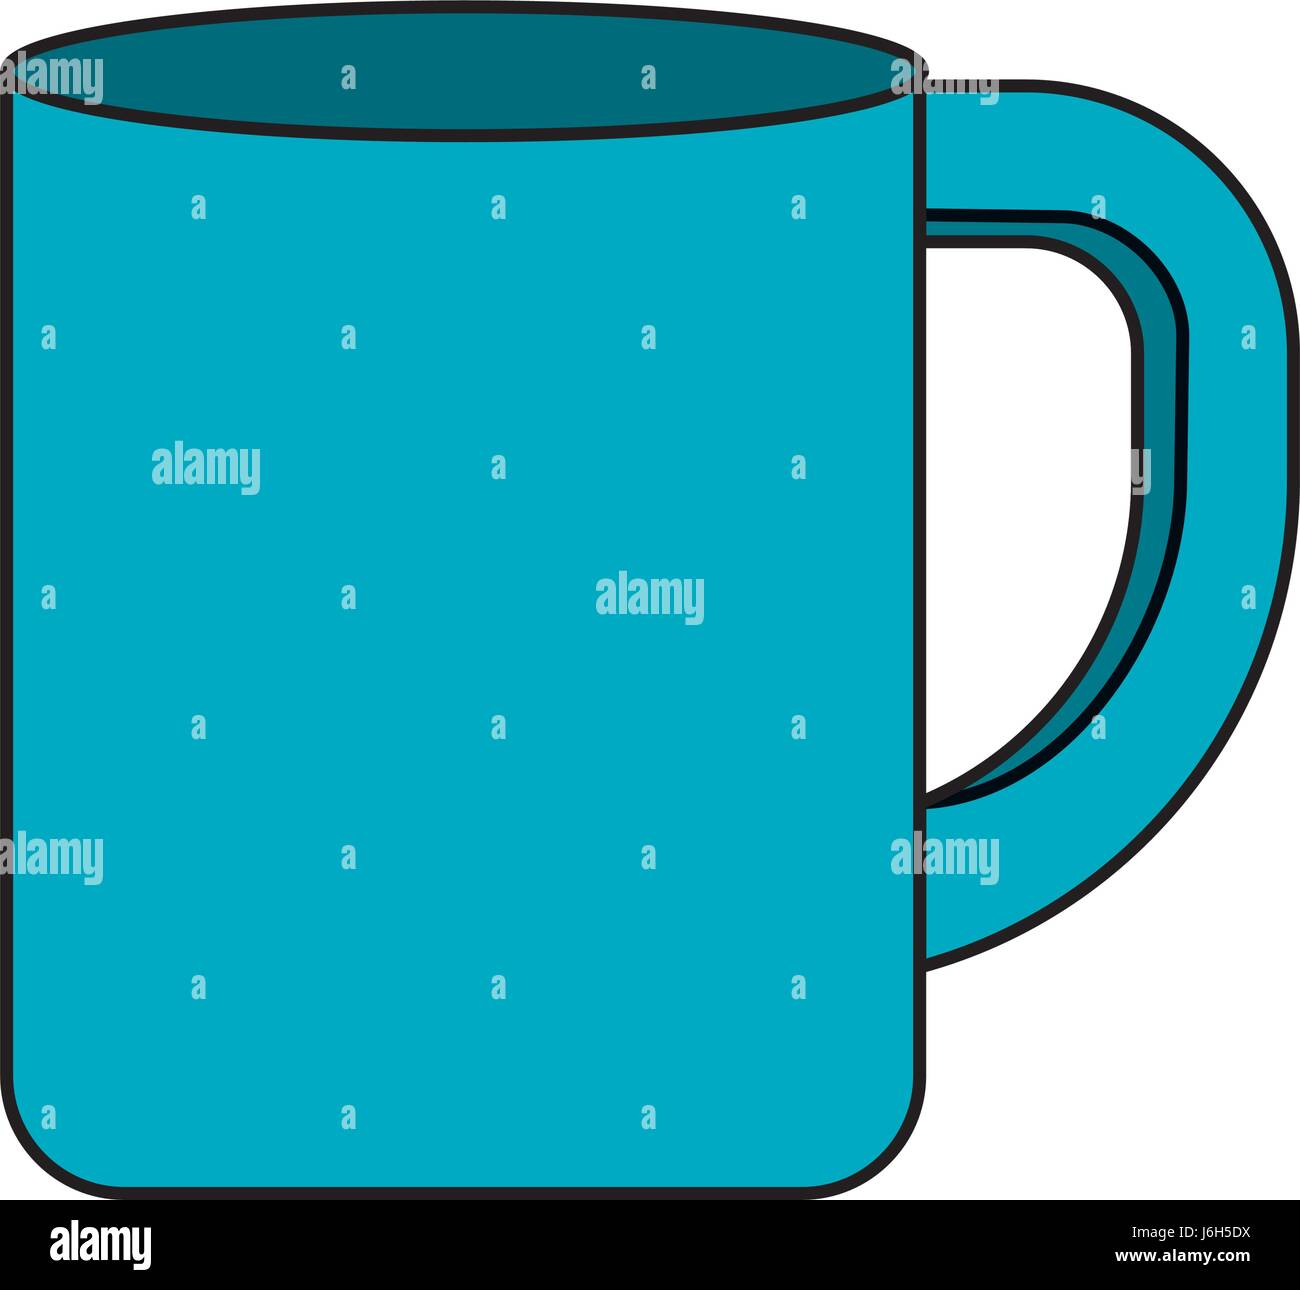 cup to drink with nice design - Stock Image